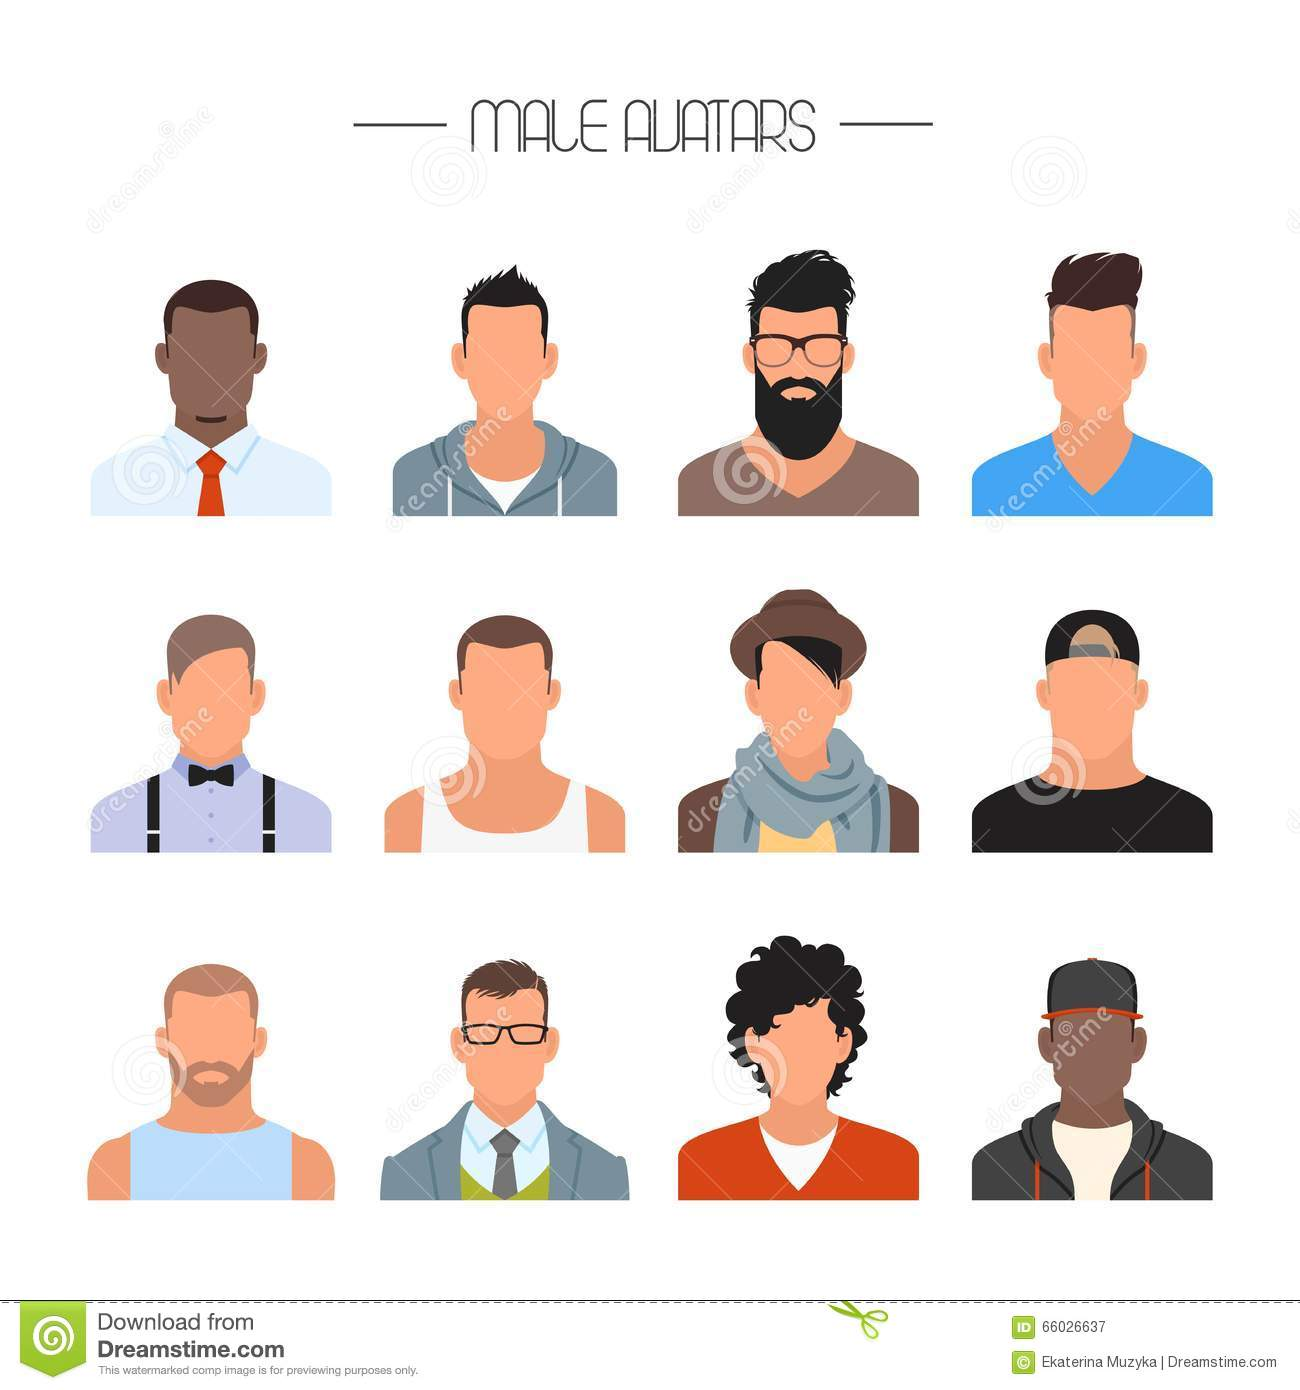 Swell Male Avatar Icons Vector Set People Characters In Flat Style Inspirational Interior Design Netriciaus